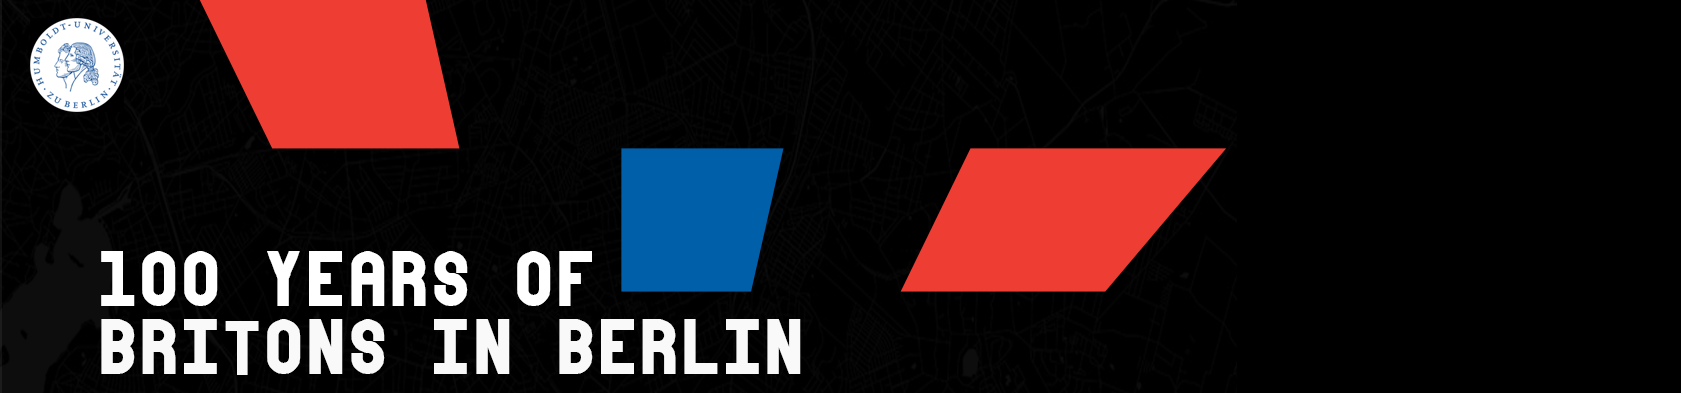 3_100YearsBritonsBerlin_Banner.png